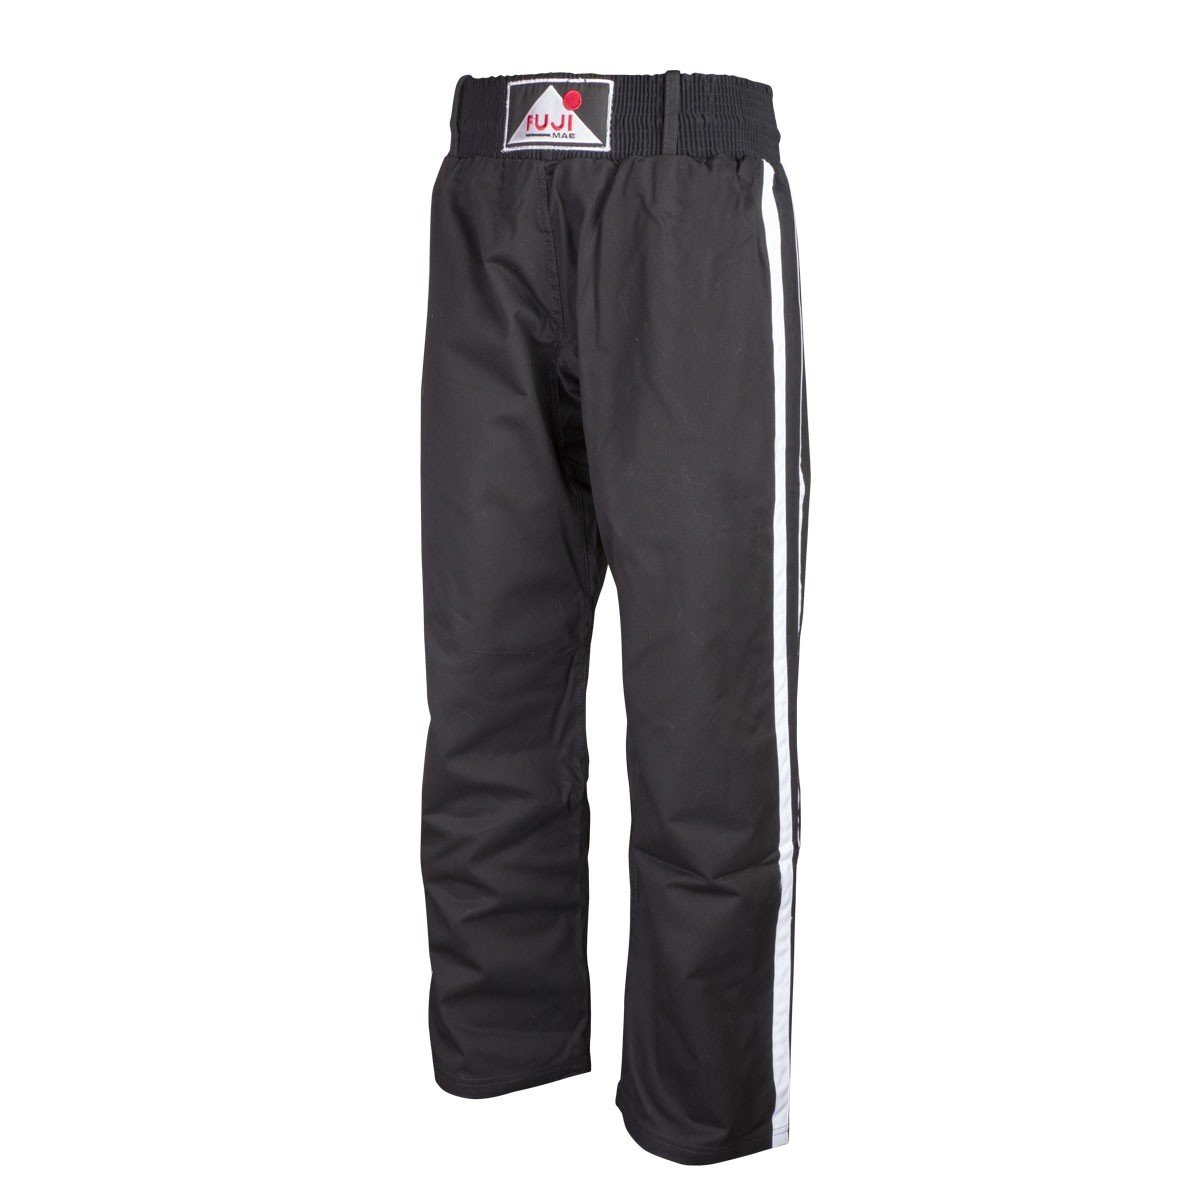 Full contact - Fuji Mae - Pantalon Full.Coton, bandes latérales